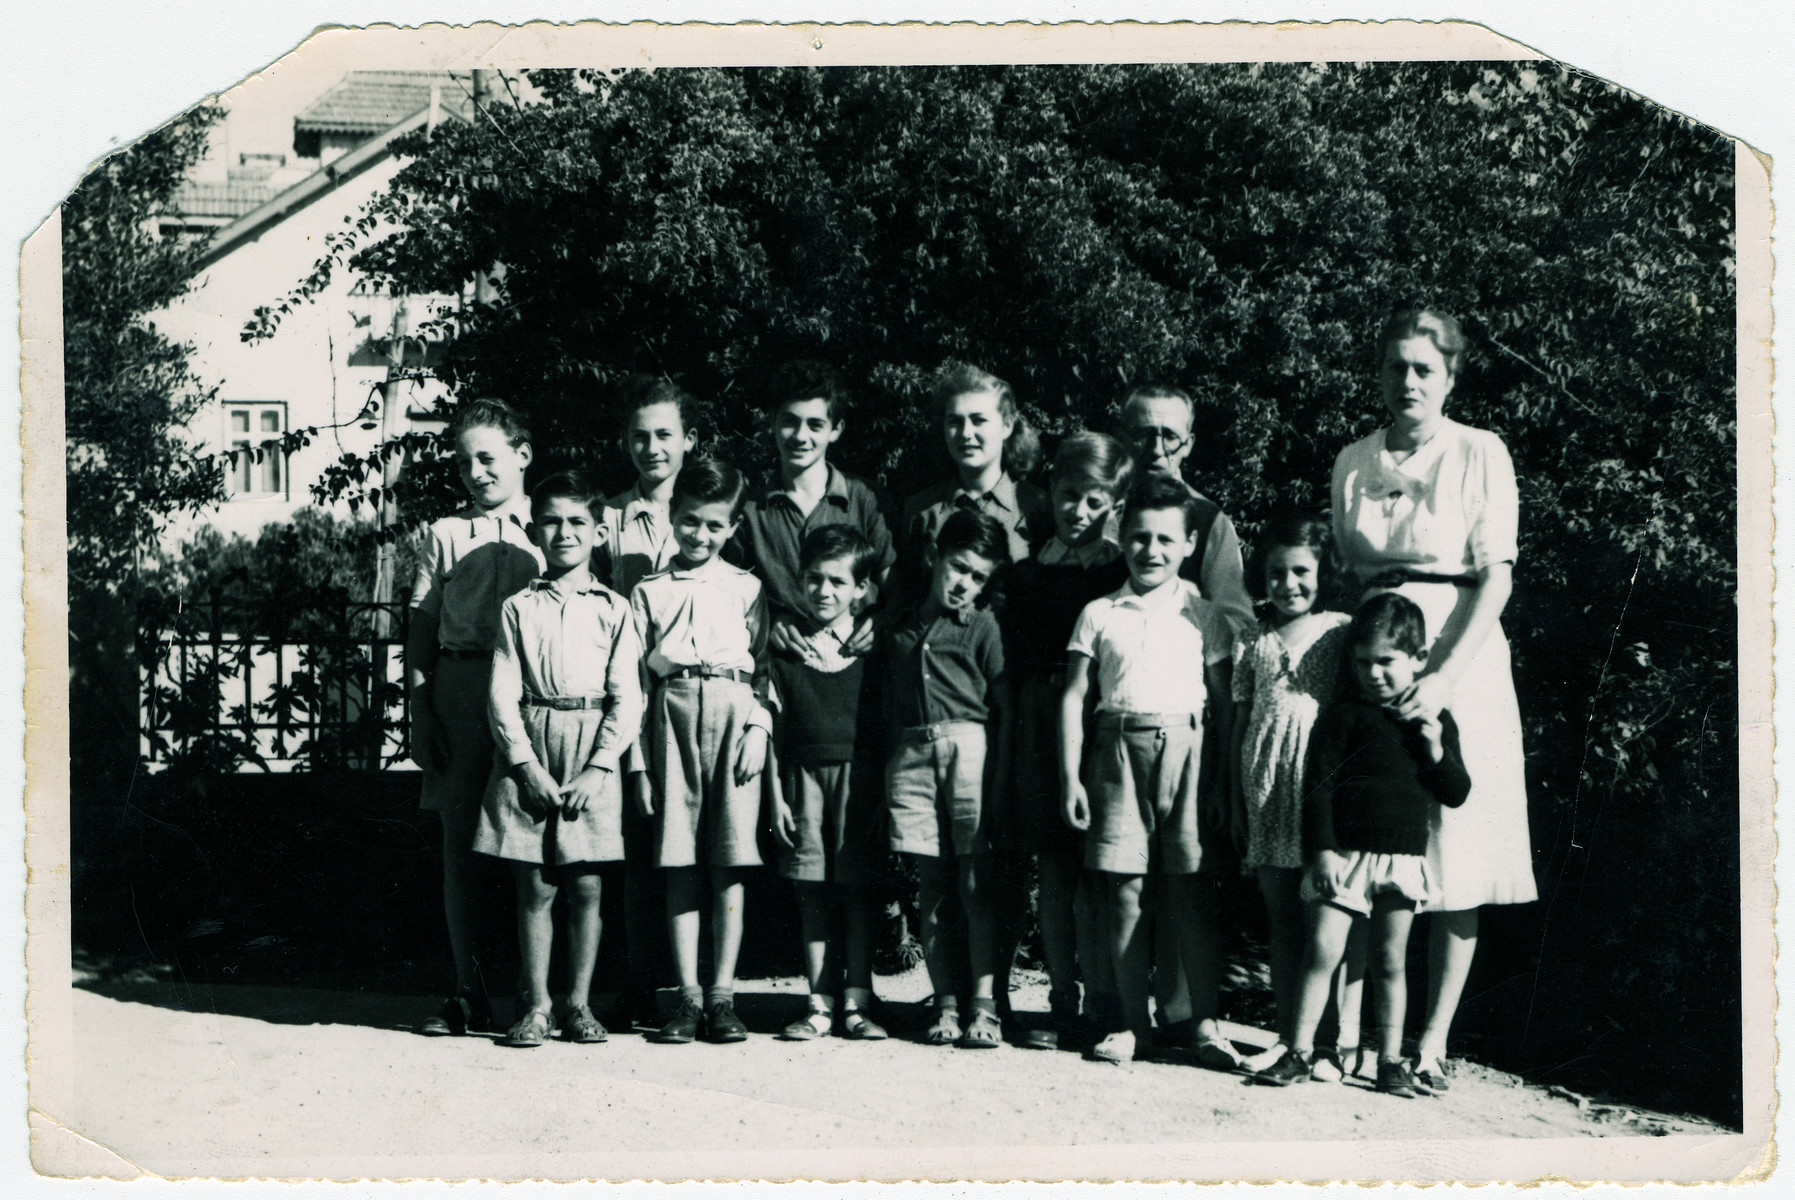 Group portrait of Jewish children  waiting to immigrate to the United States.  Manfred Manasse is pictured in the front row, second from the right.  His brother Gustav is pictured in the second row on the far left.